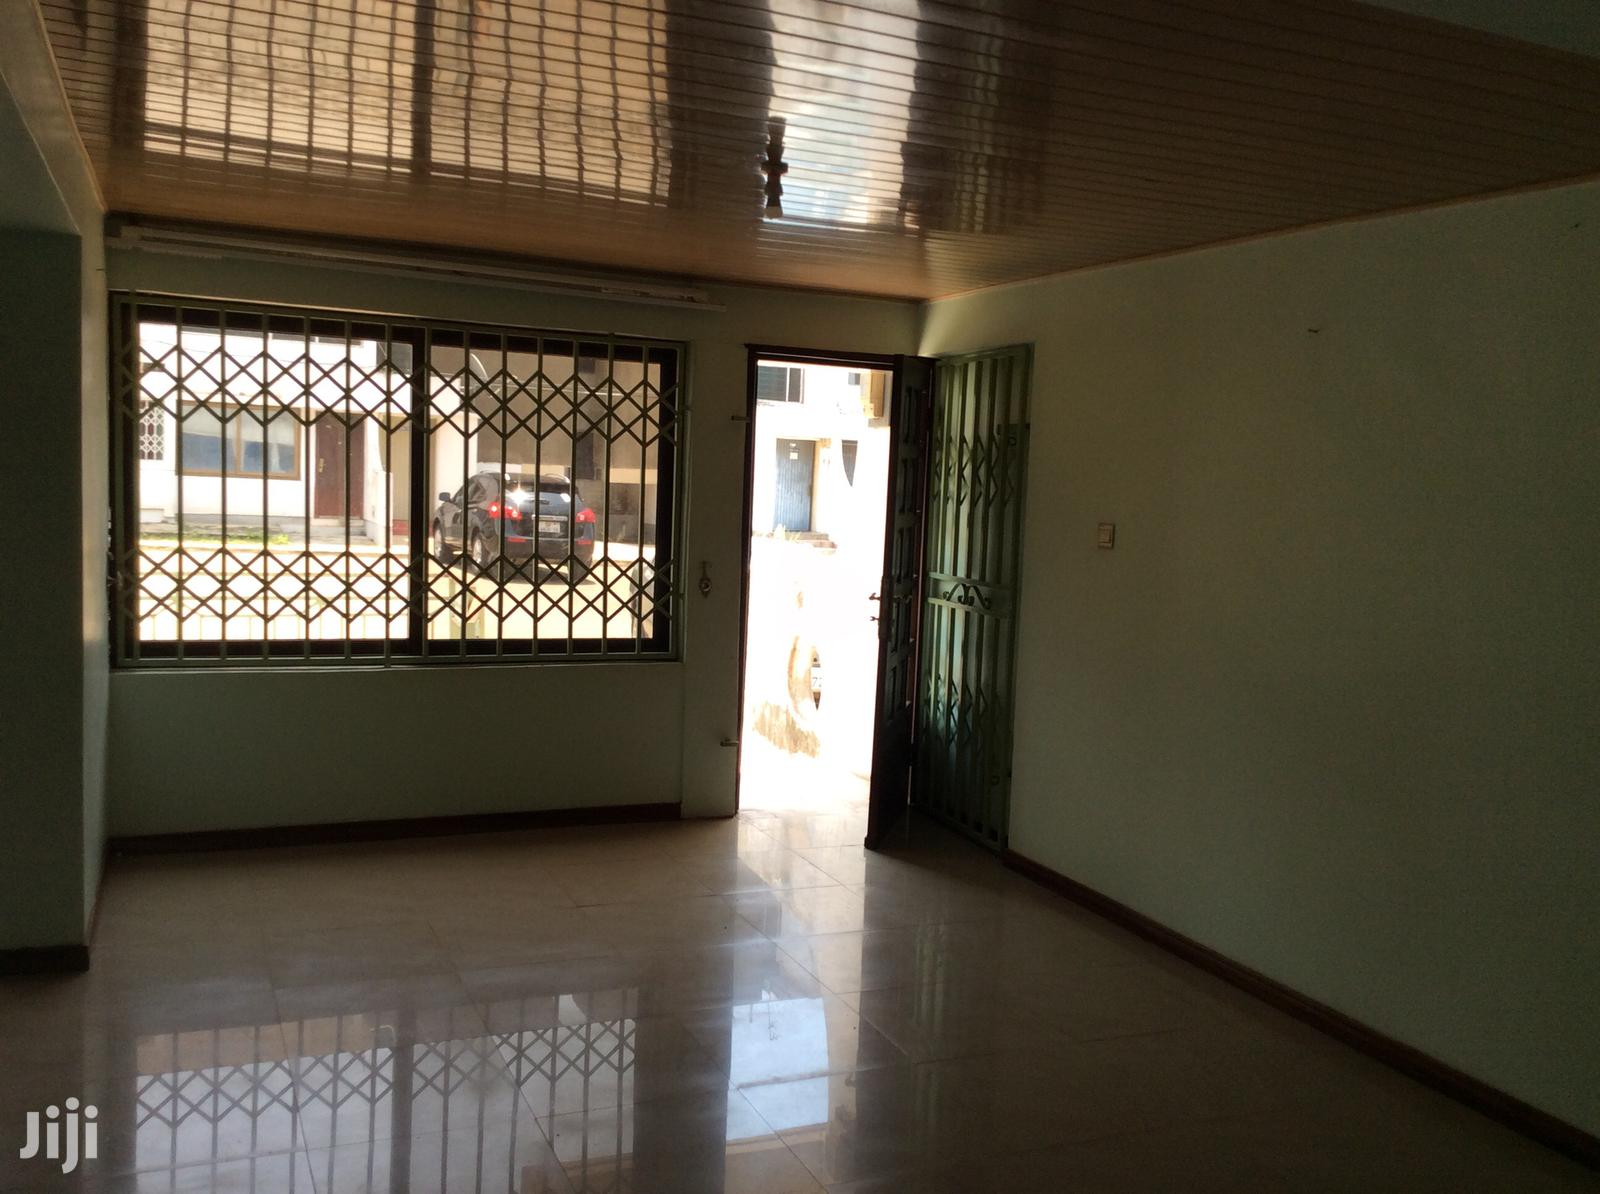 2 Bedroom SSNIT Flat, 3RD Floor 4 Sale, Sakumono C13 | Houses & Apartments For Sale for sale in Tema Metropolitan, Greater Accra, Ghana